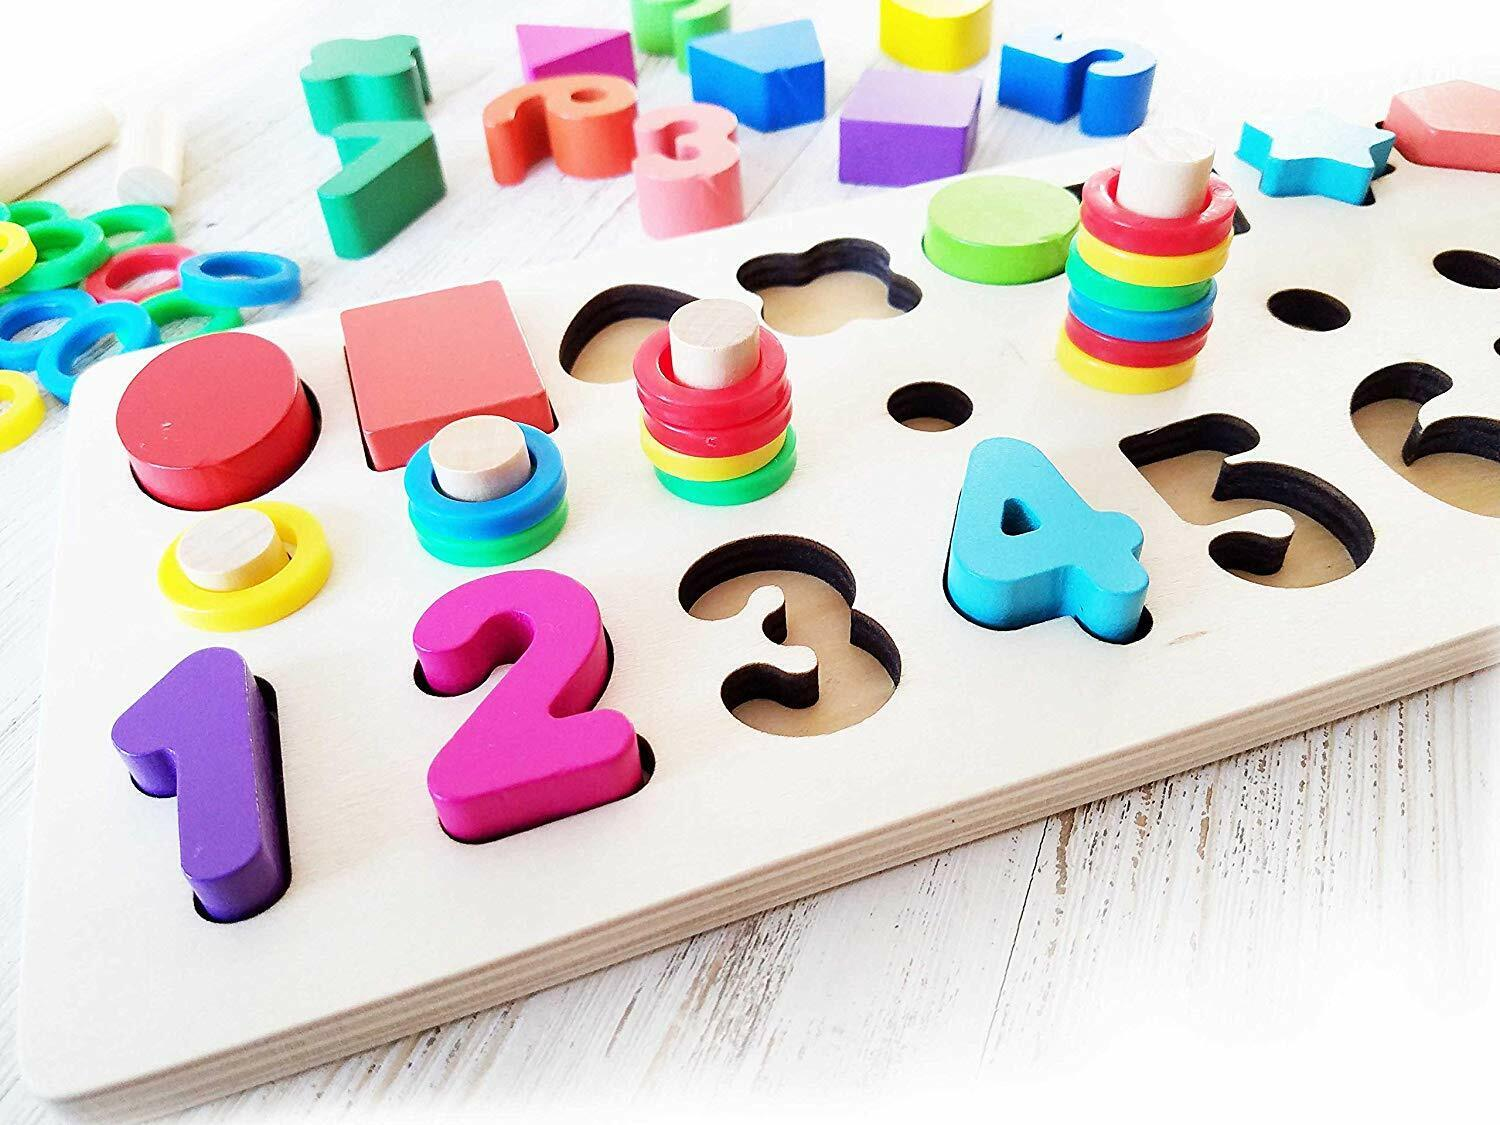 Shapes And Color Sorter Puzzle Stacker Wooden Toy 3 On 1 Board wnumbers colors